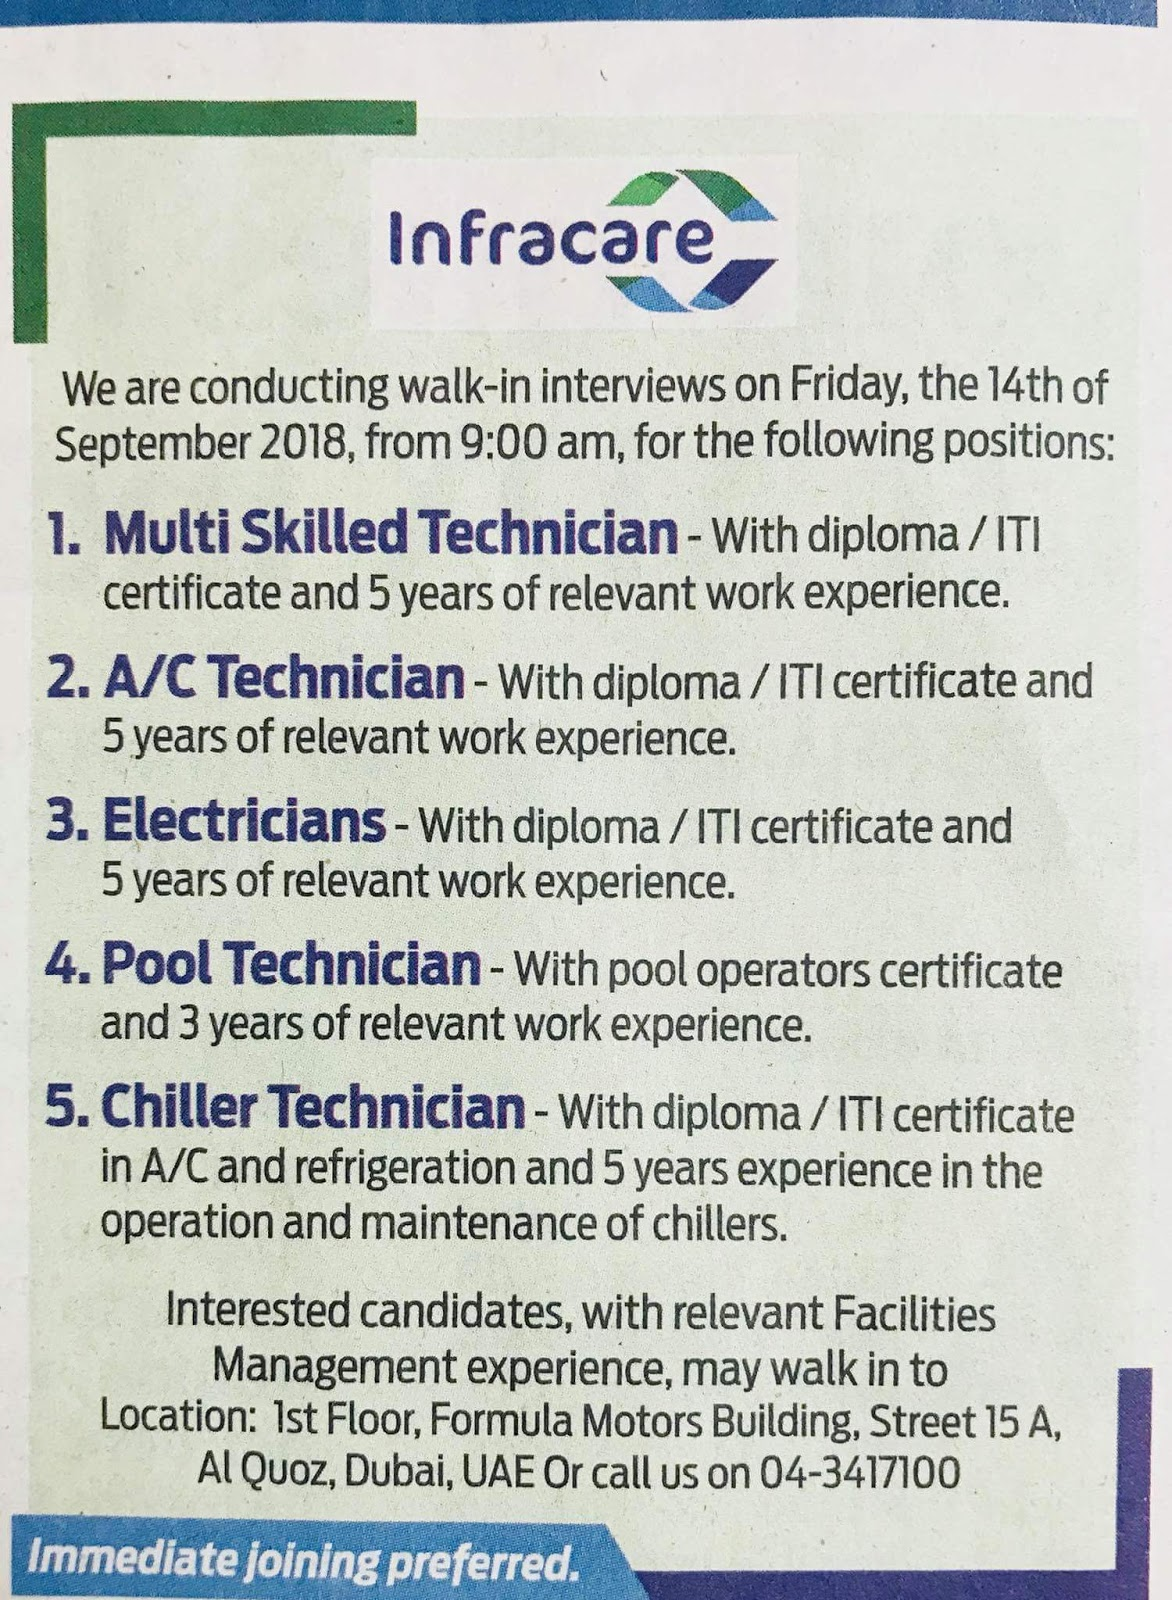 Required Technicians for INFRACARE Interview 14th sept 2018